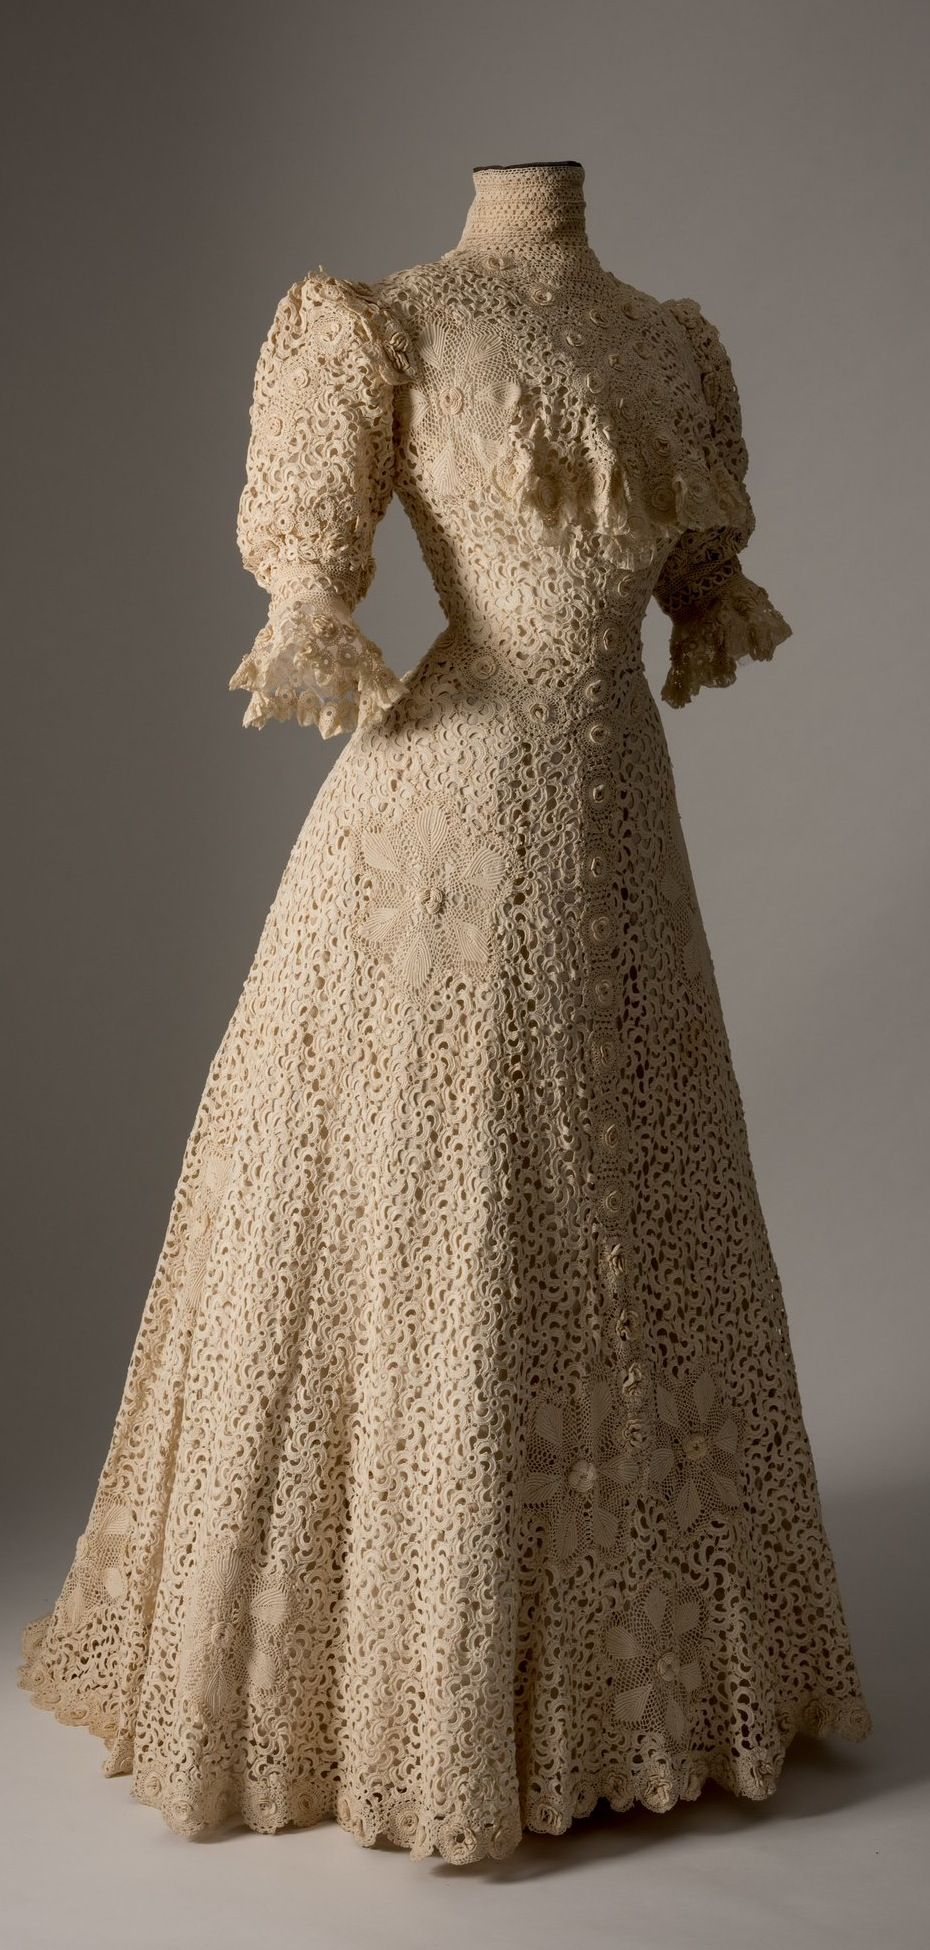 Cream Crochet Lace Dress, C. 1900. Collection Of Fashion